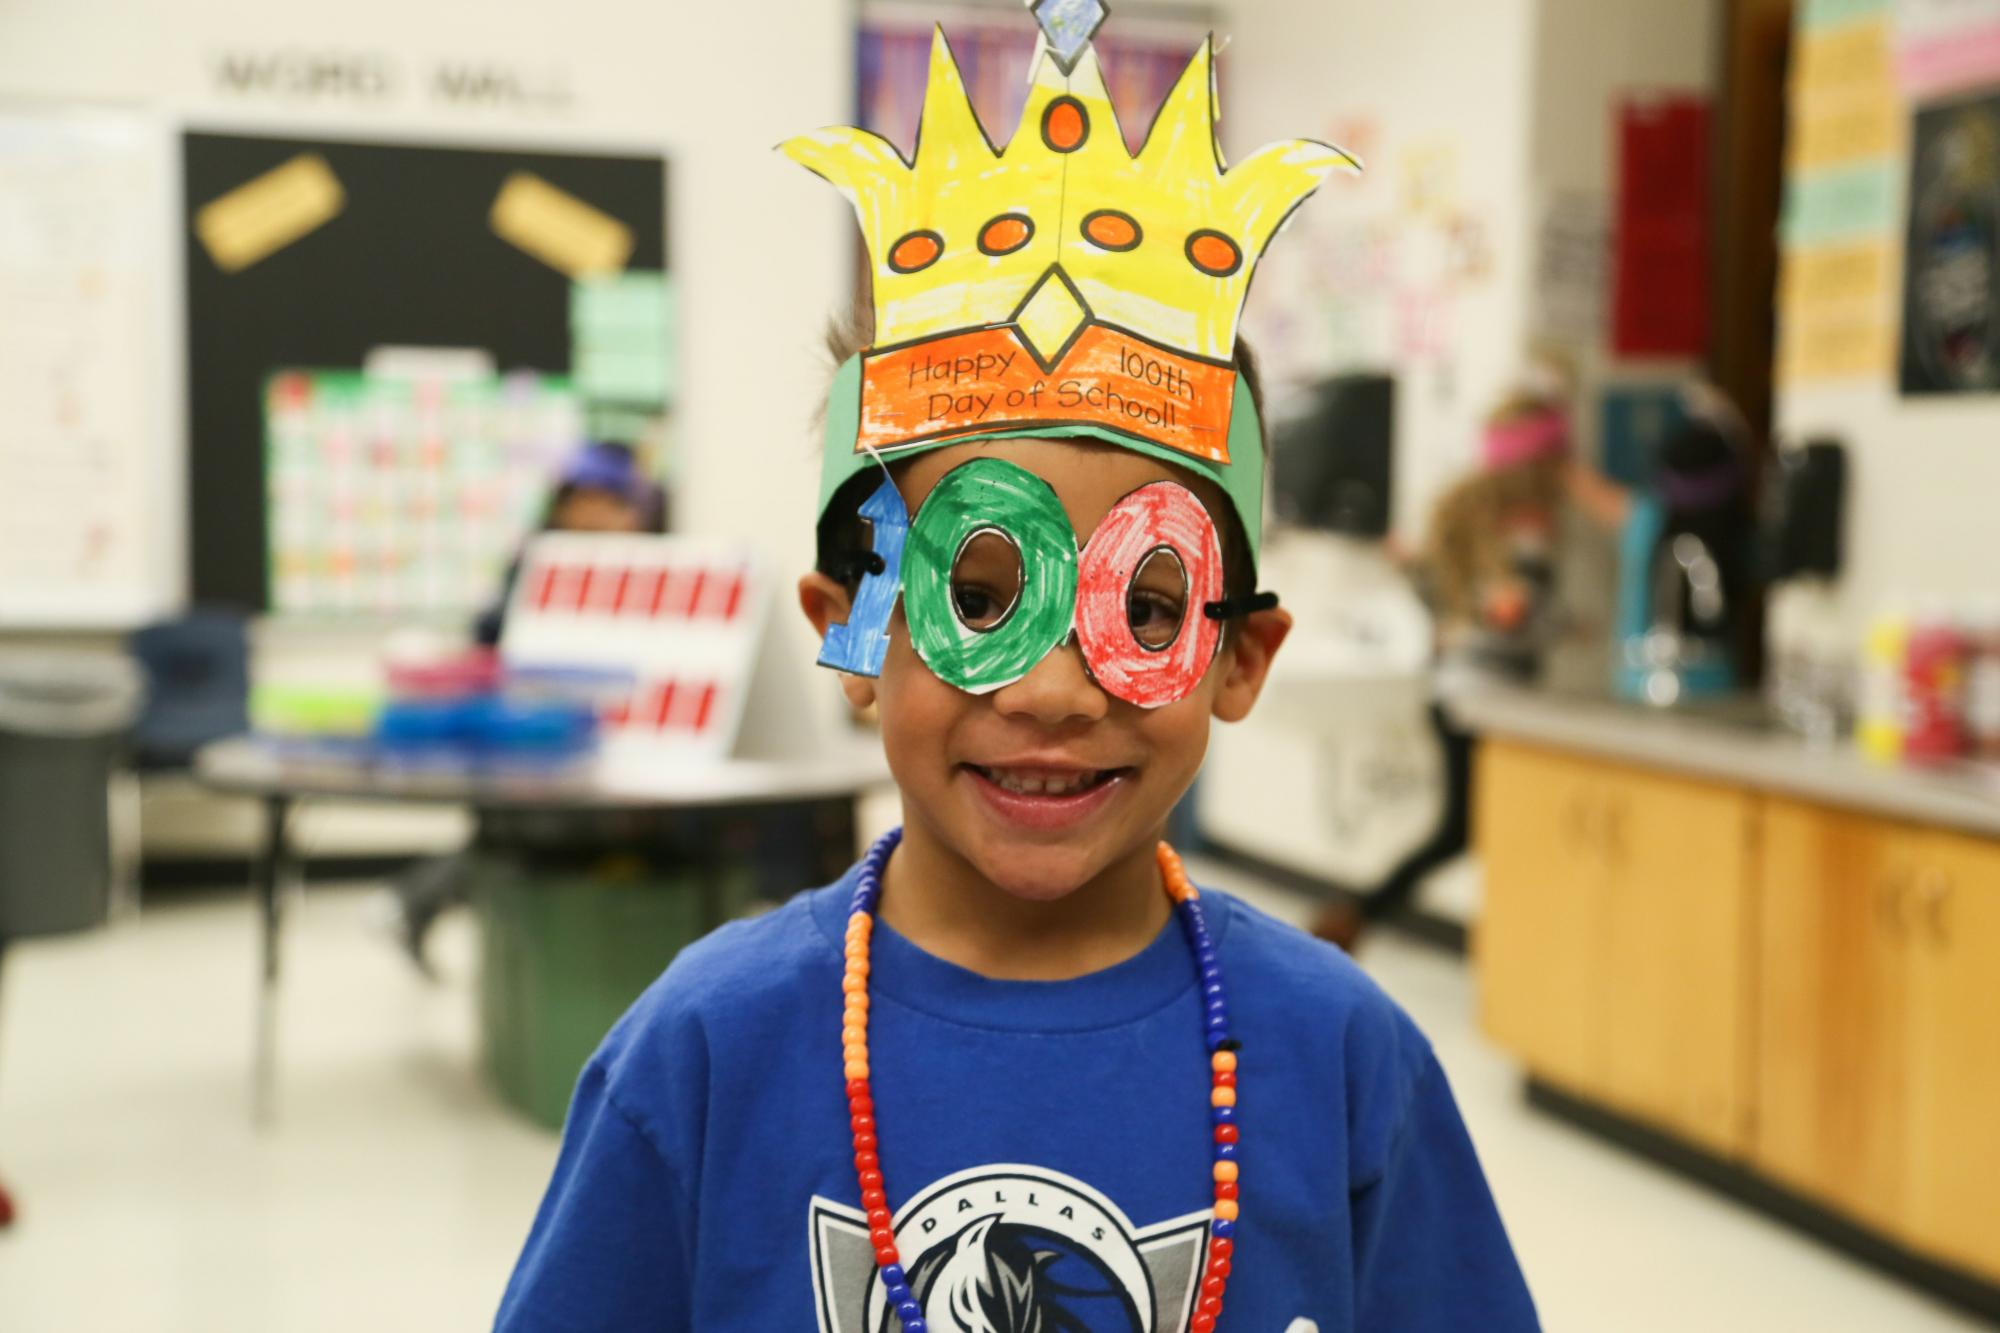 Beattie boy wearing a crown and glasses in the shape of 100 to celebrate 100 days of schools.